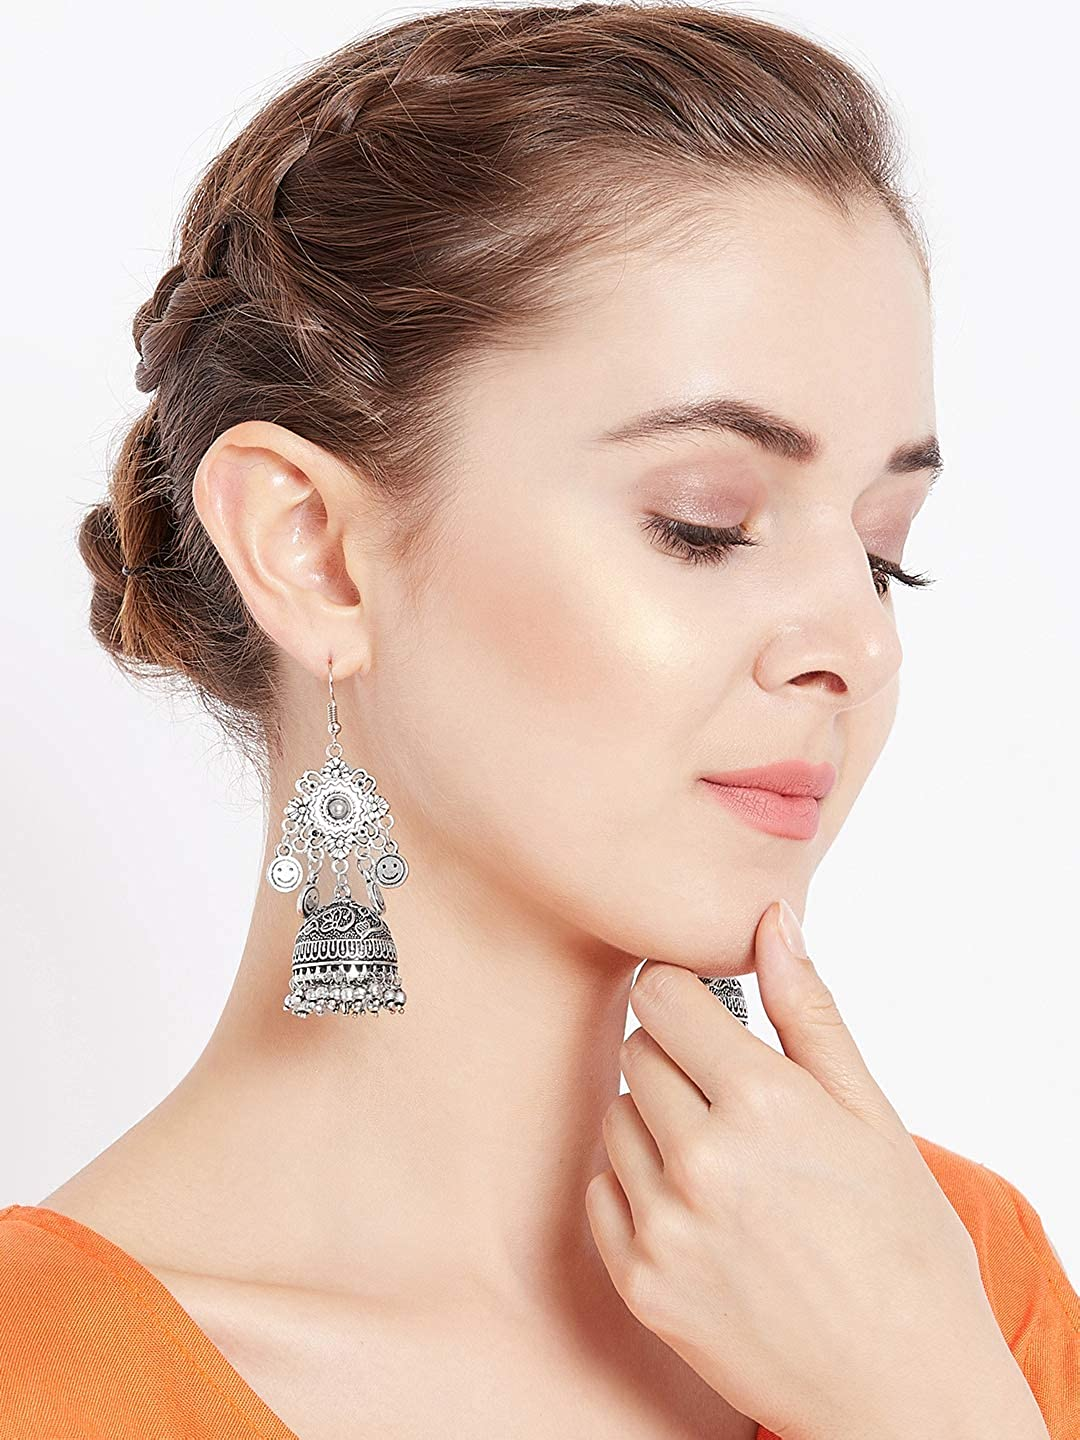 ZeroKaata/ Fashion Jewellery Embellished Tribal Jewellery Jhumki Earrings With Hanging Smilies For Women /& Girls